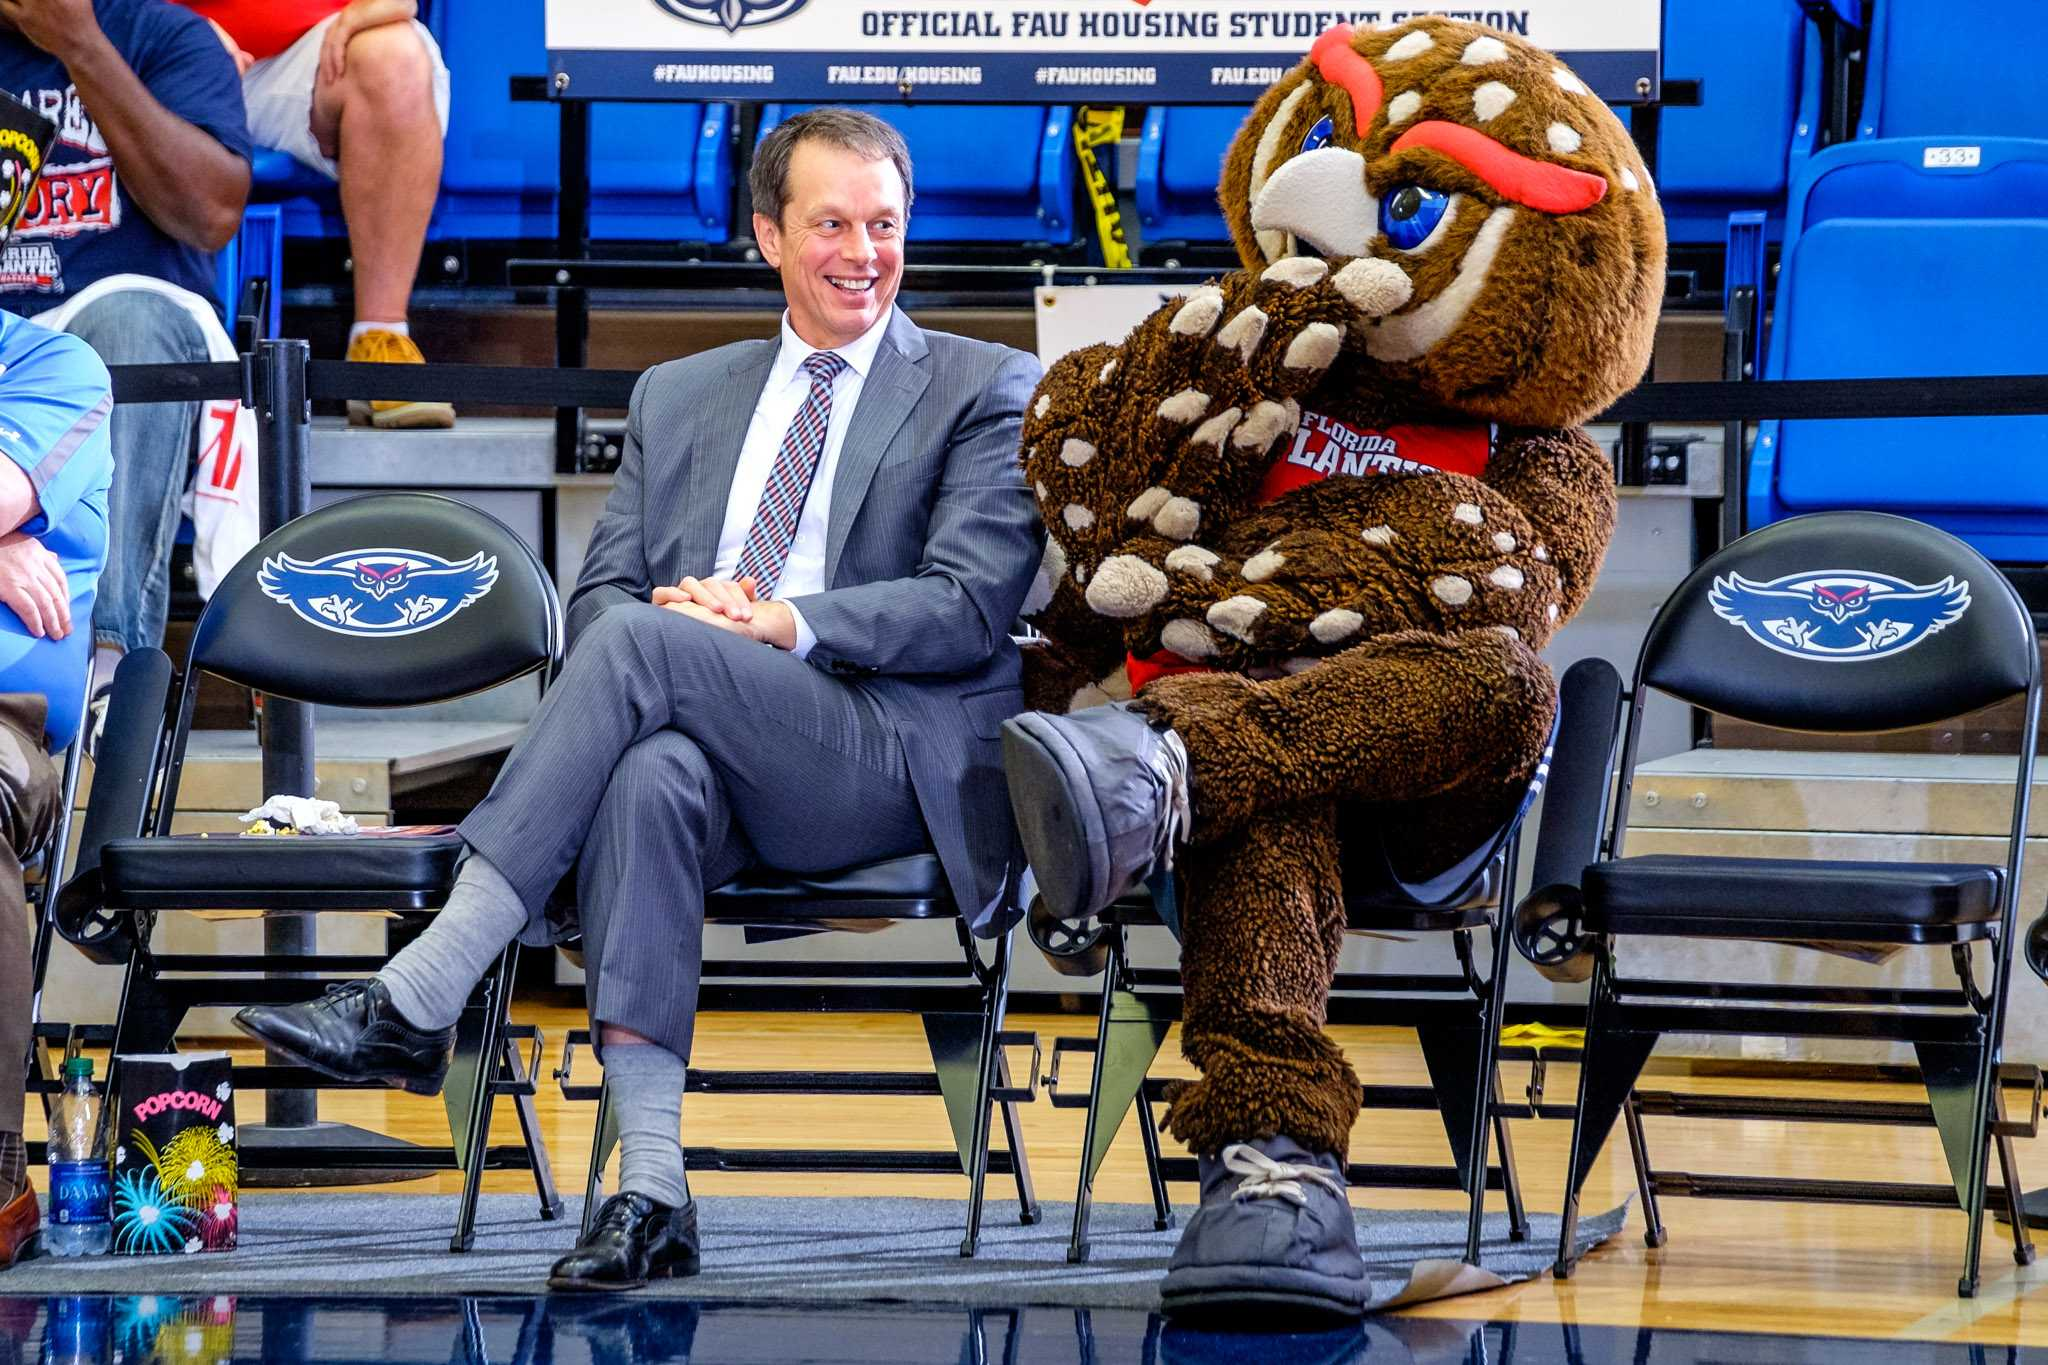 University President John Kelly and Owlsley watch the FAU men's basketball team play against Old Dominion  on Jan. 28. Mohammed F Emran | Staff Photographer